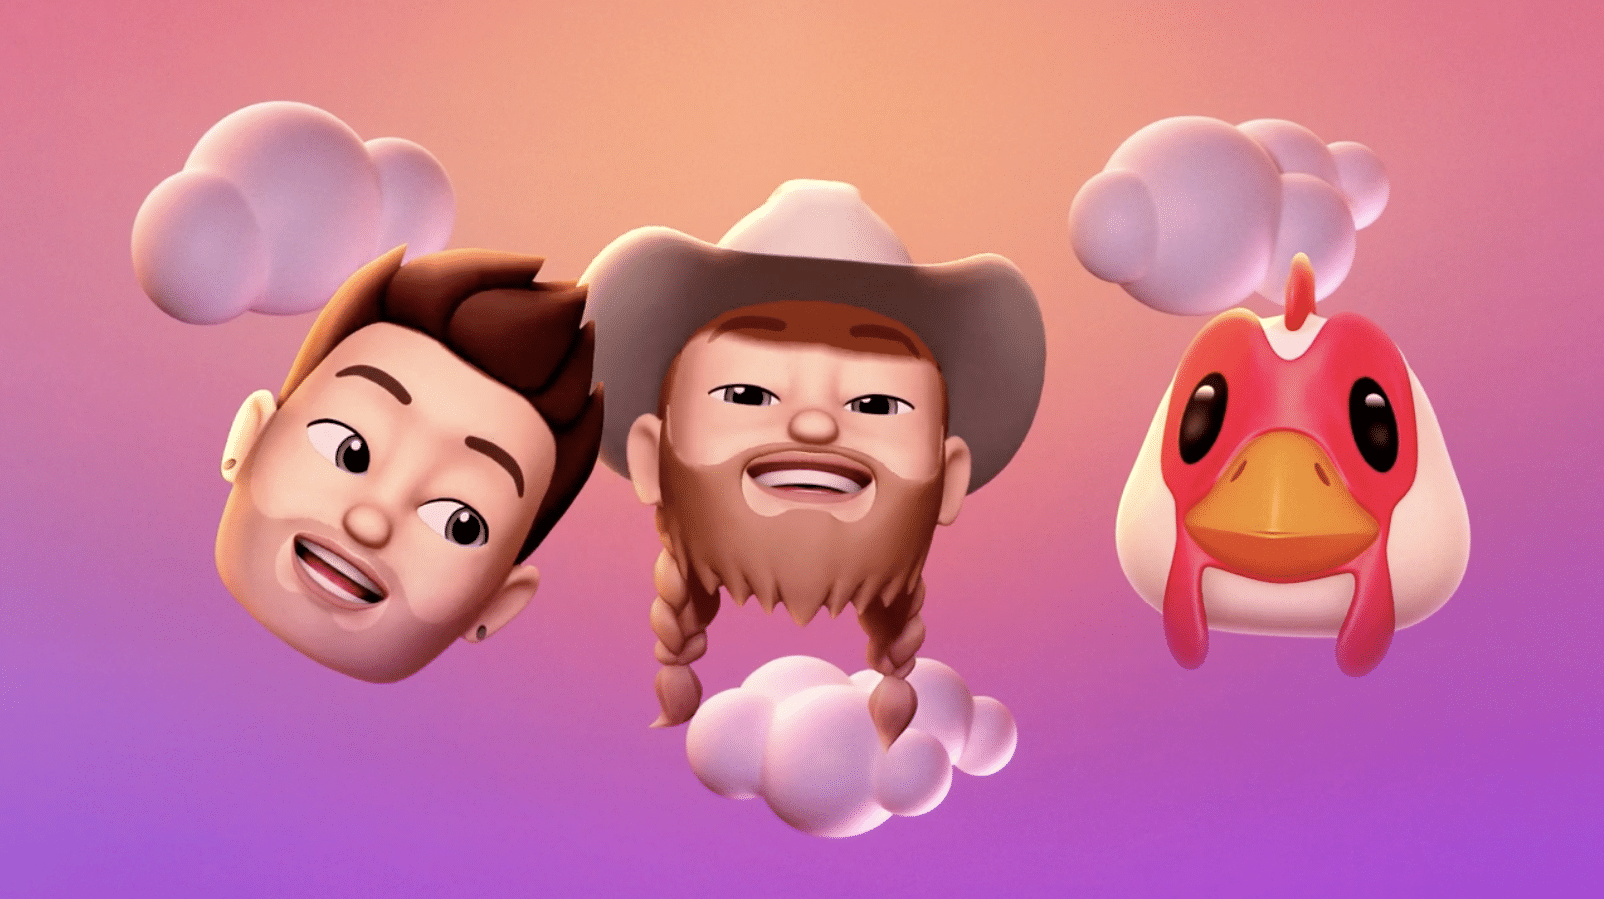 apple-posts-three-new-memoji-ads-featuring-ariana-grande-khalid-florida-georgia-line-video